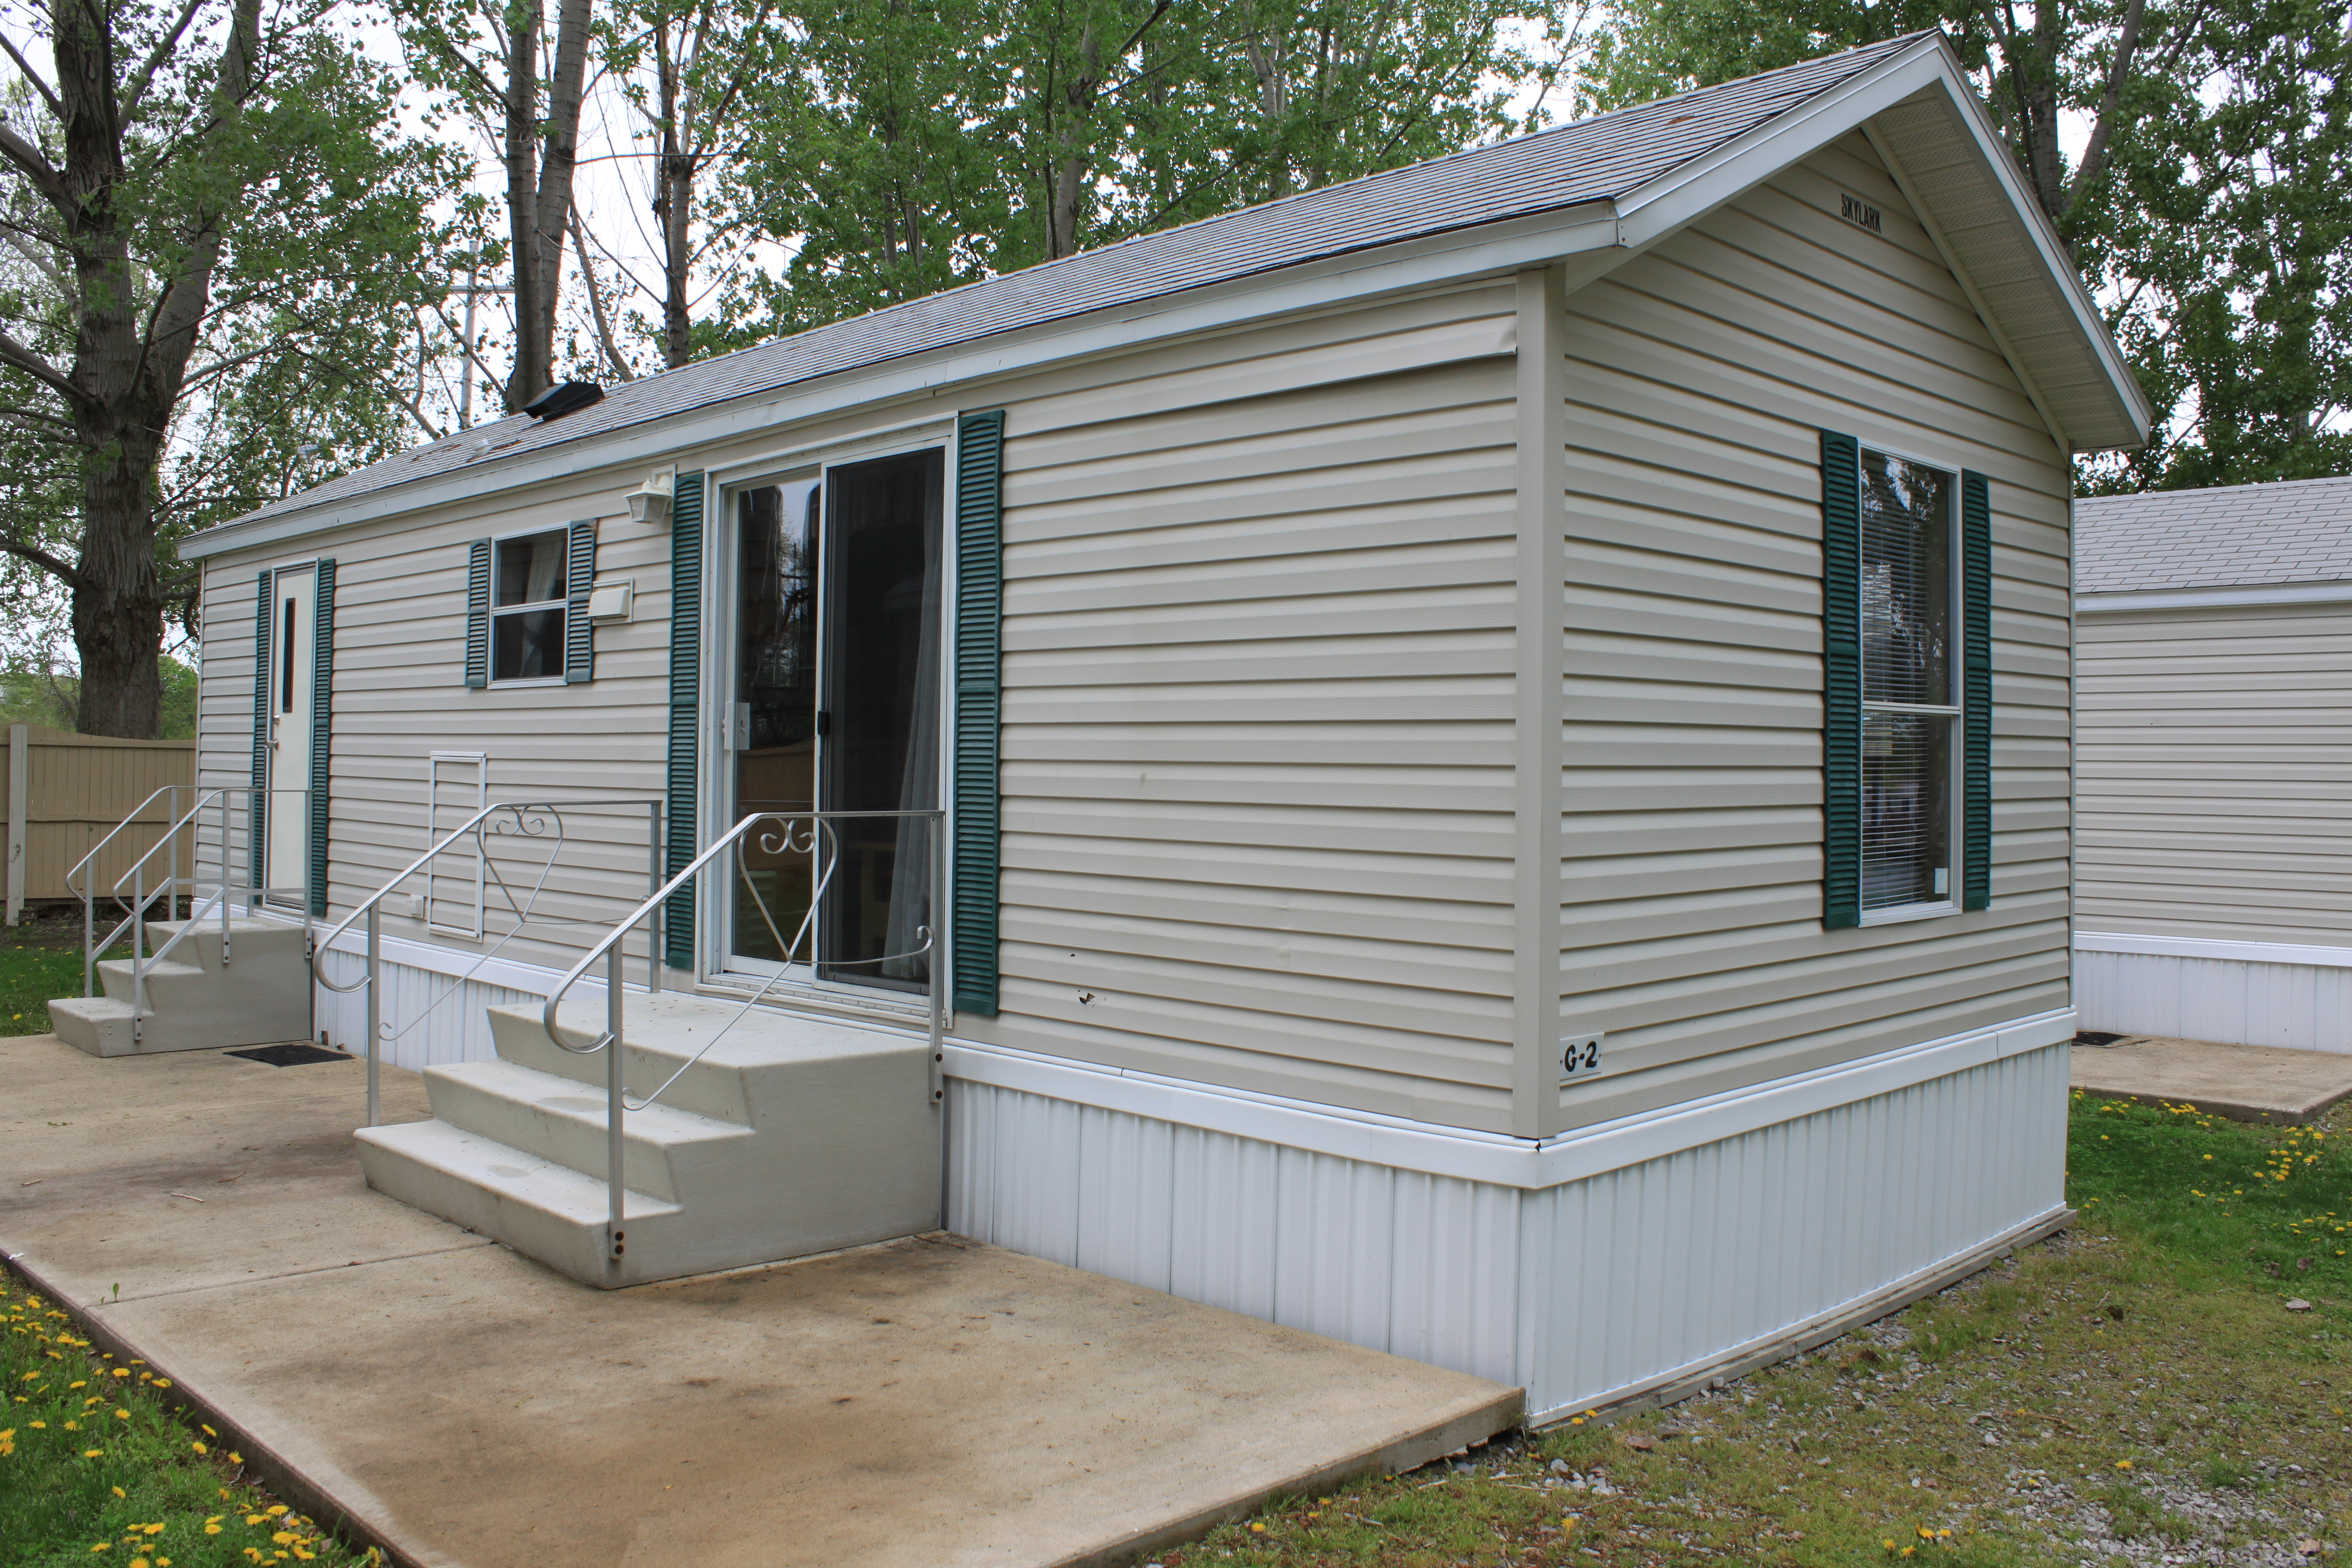 parks rooms ohio bestedieetplan com cabins loft cabin state good x marvelous with looking in bunk